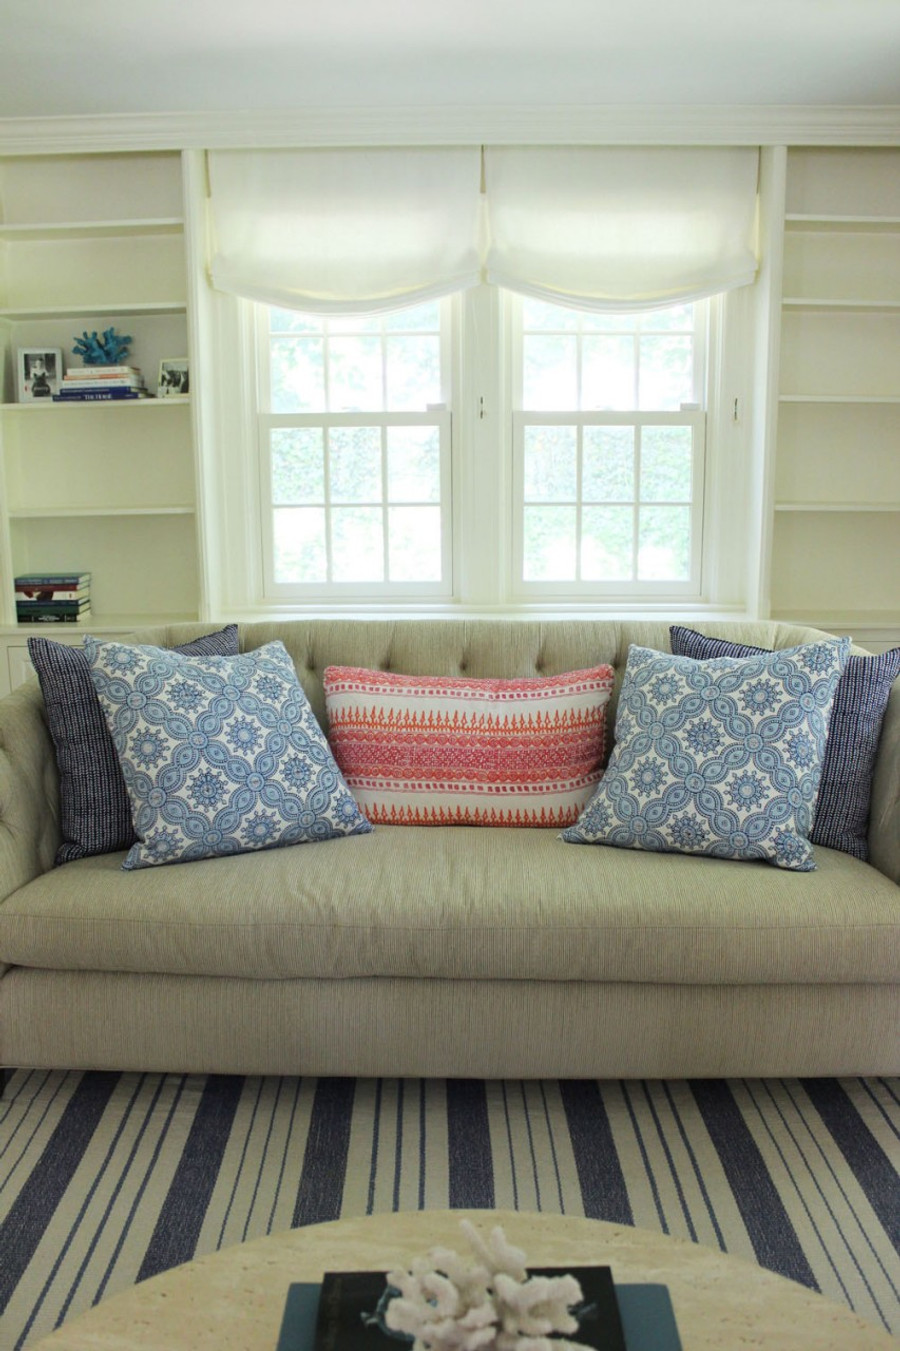 Casual Roman Shades in Kravet Linen - Dublin in Bleach by Lynn Chalk.  Pillows in John Robshaw Algiers in Lotus, Petra in Cobalt and Aleppo in Indigo